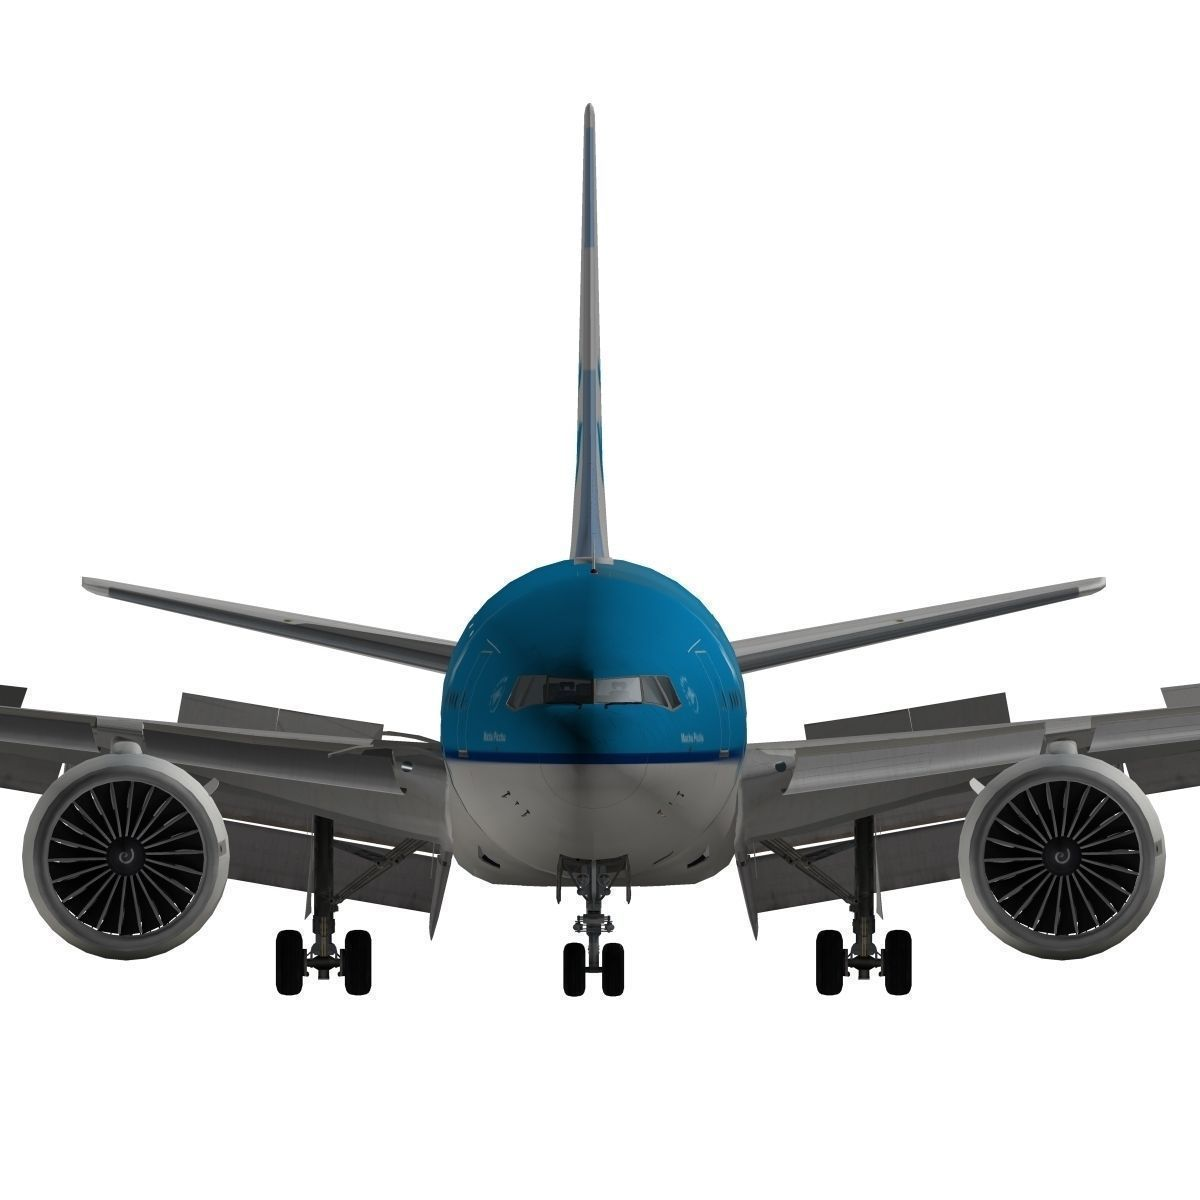 7 s model klm Klm has previously renewed the its business class cabins aboard its boeings 747s, 777-200s and -300s the airline's new boeing 787 dreamliners are arriving from the manufacturer with the new cabins installed on the final assembly line.